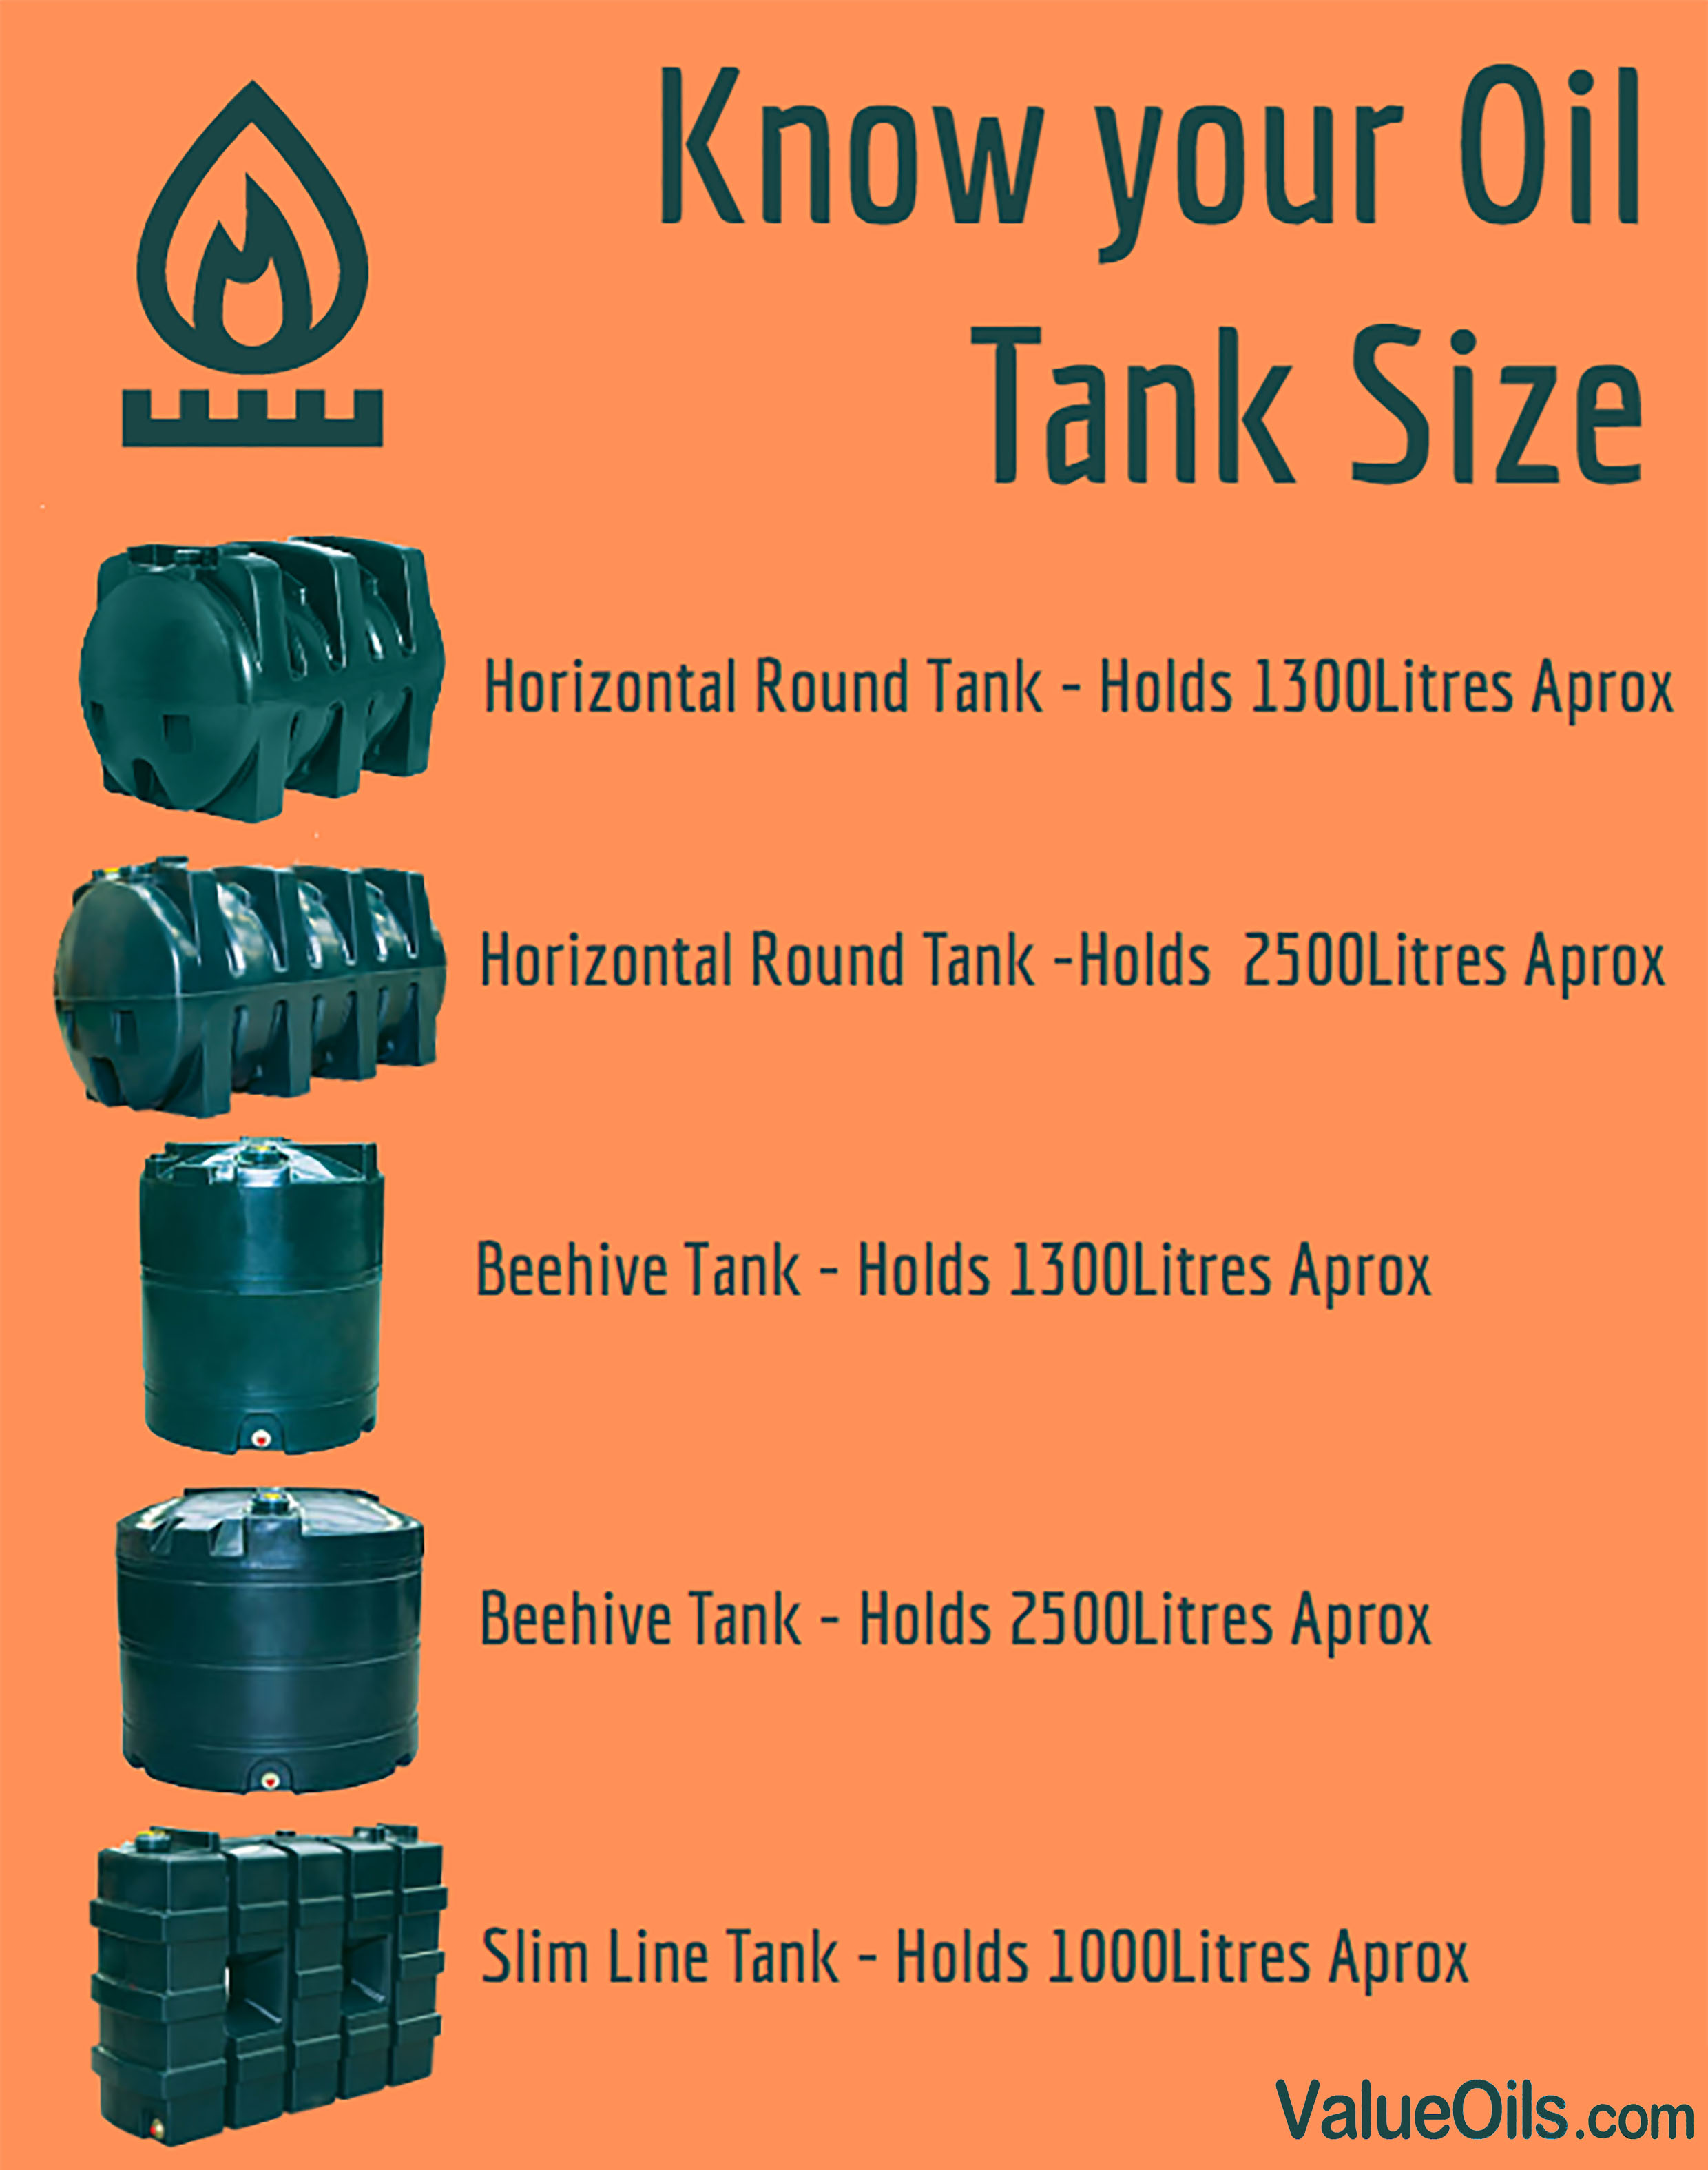 What Size Is Your Oil Tank